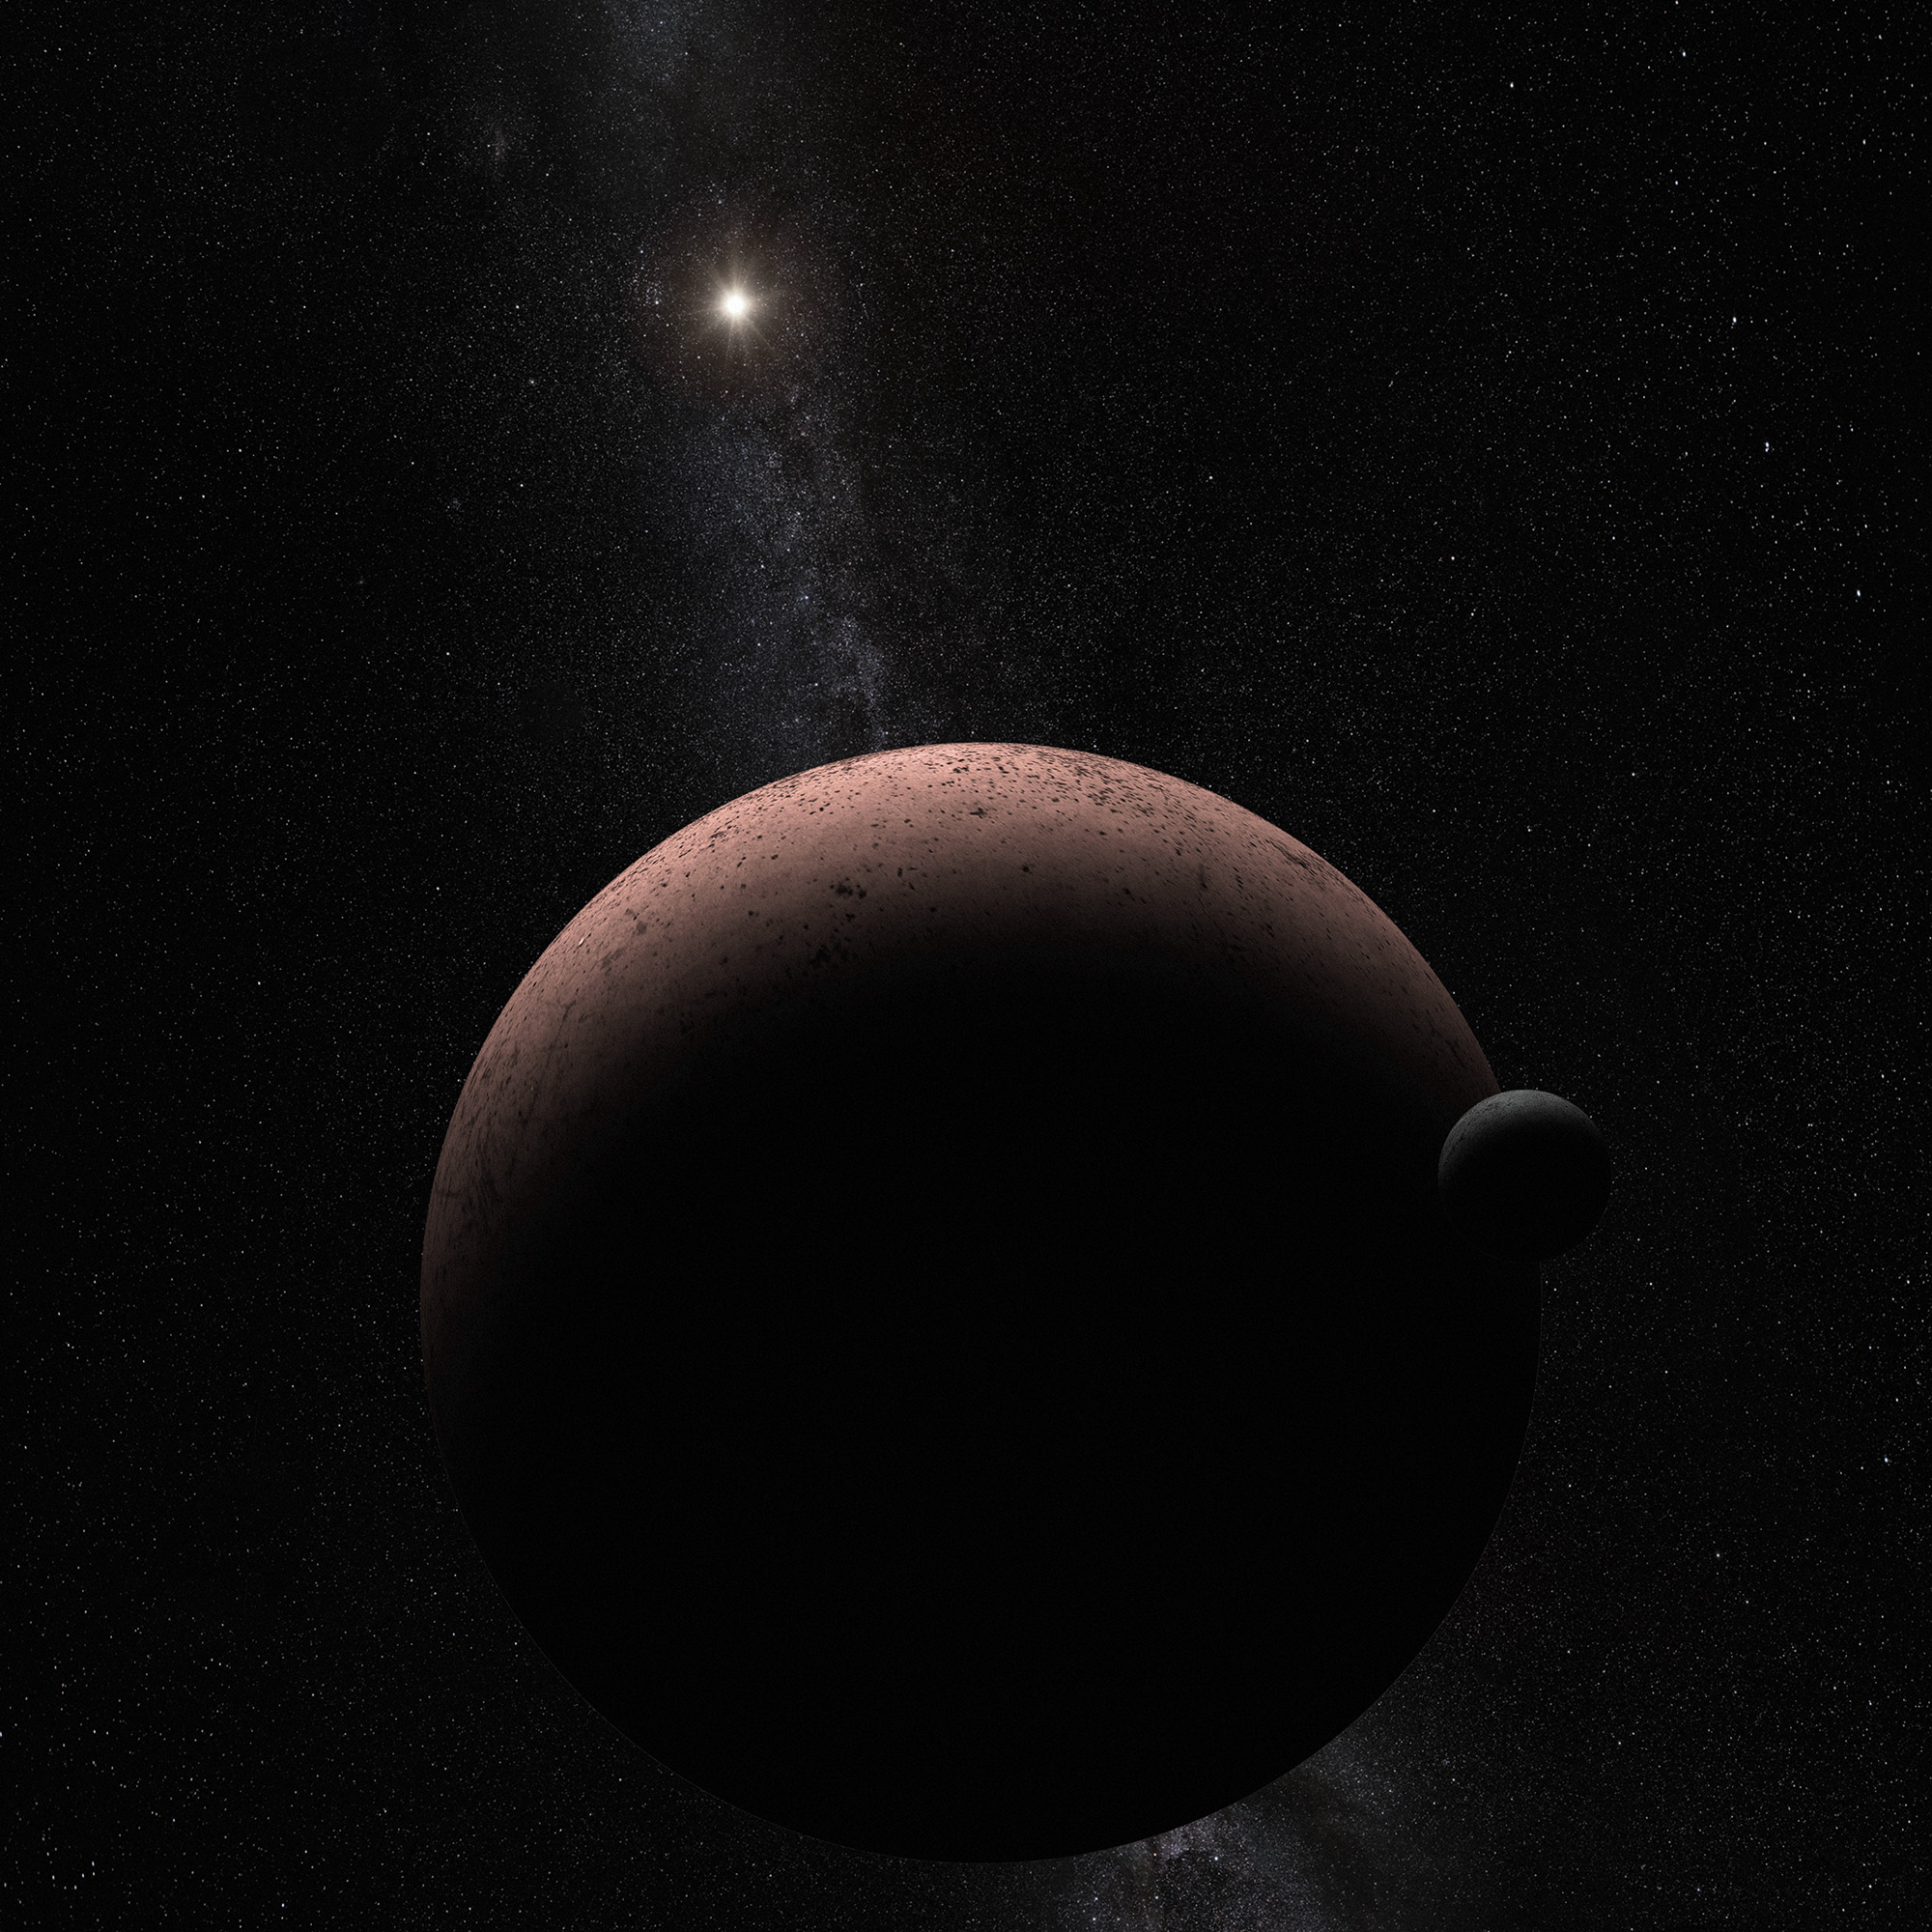 Dwarf Planet Makemake: An Icy Wonder in Pictures